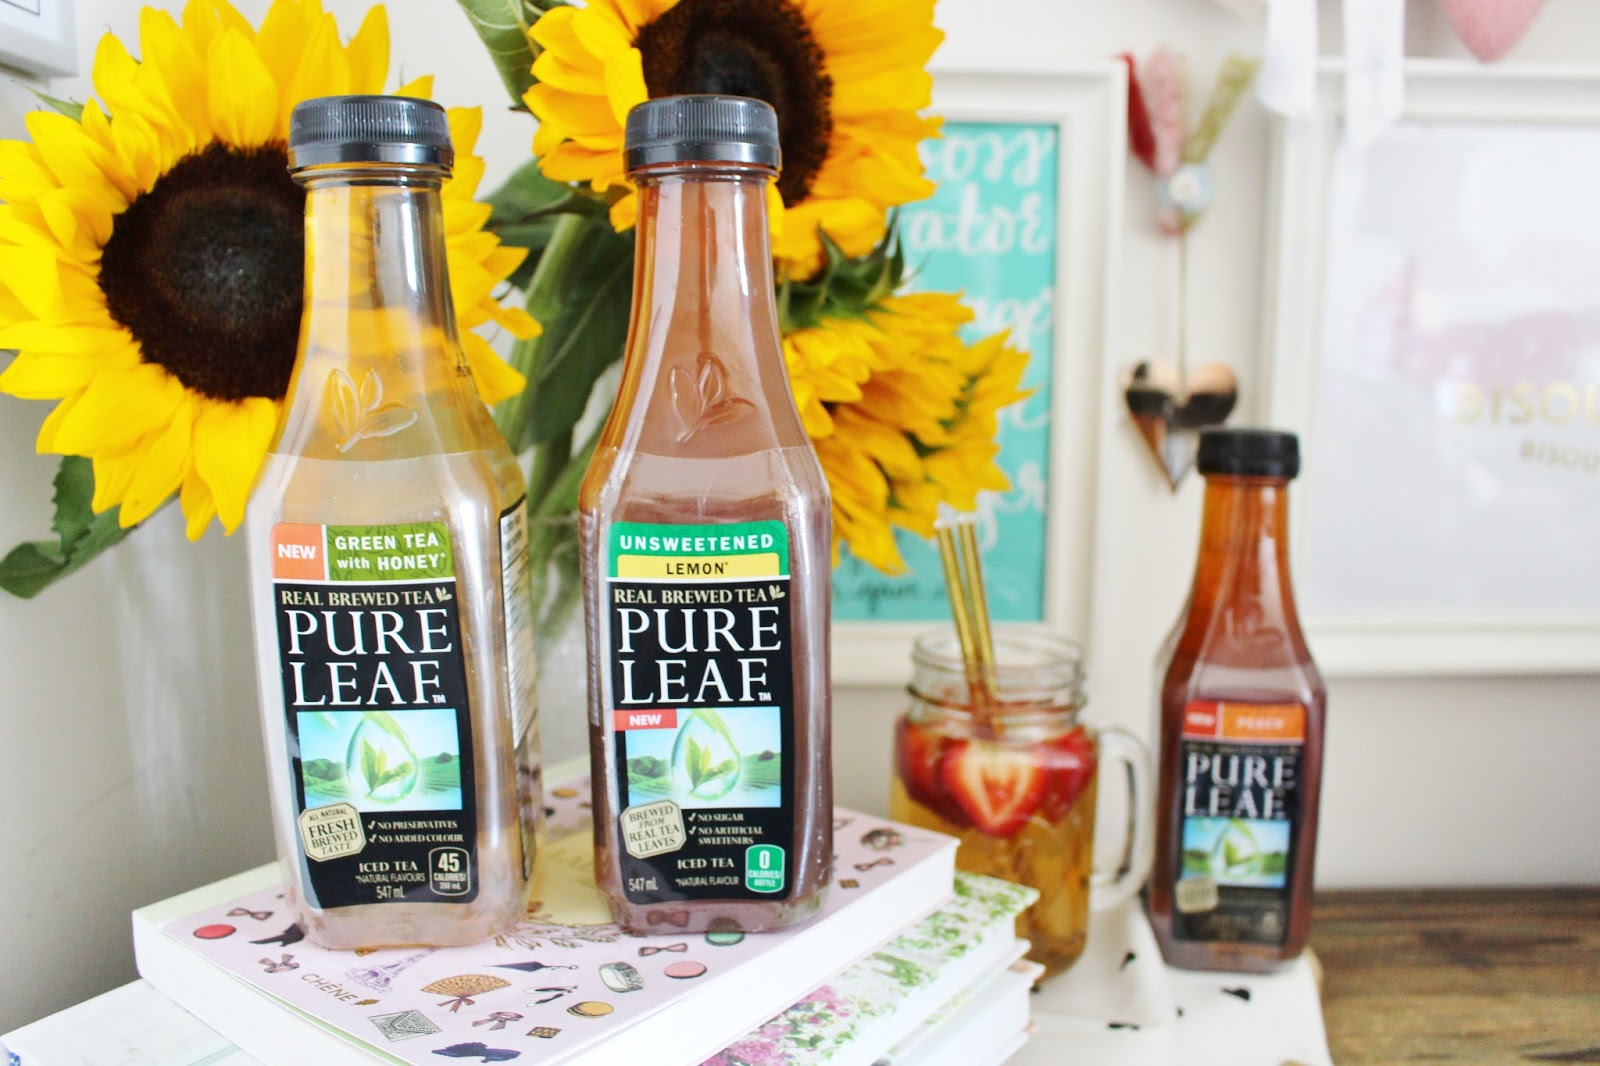 Pureleaf Iced Tea